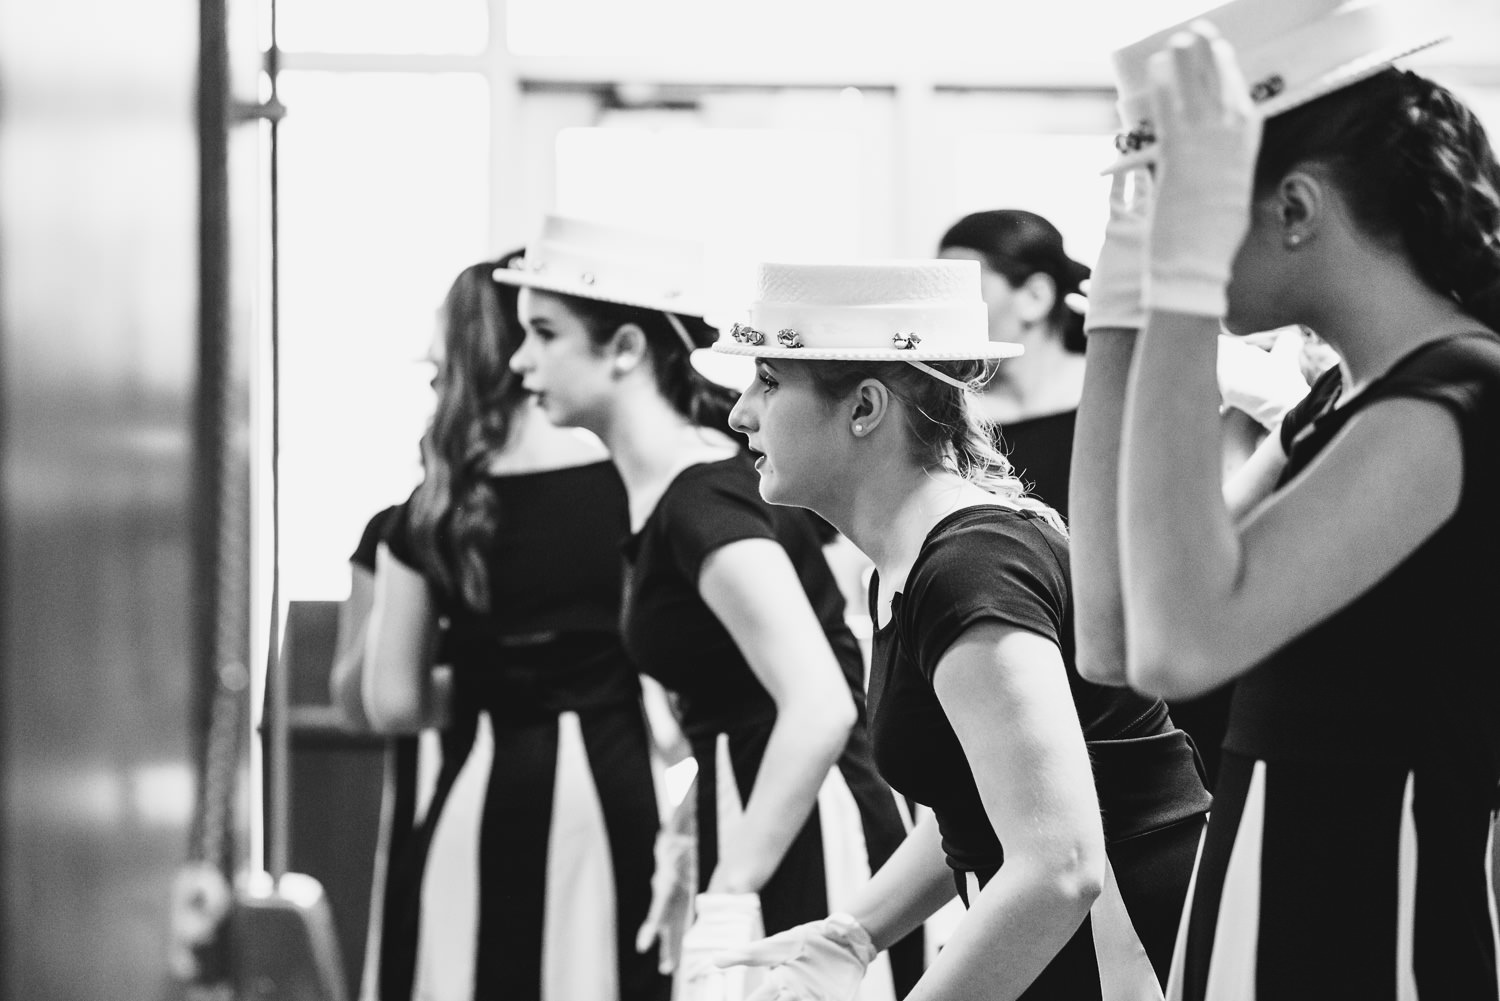 Dancers rehearse backstage.